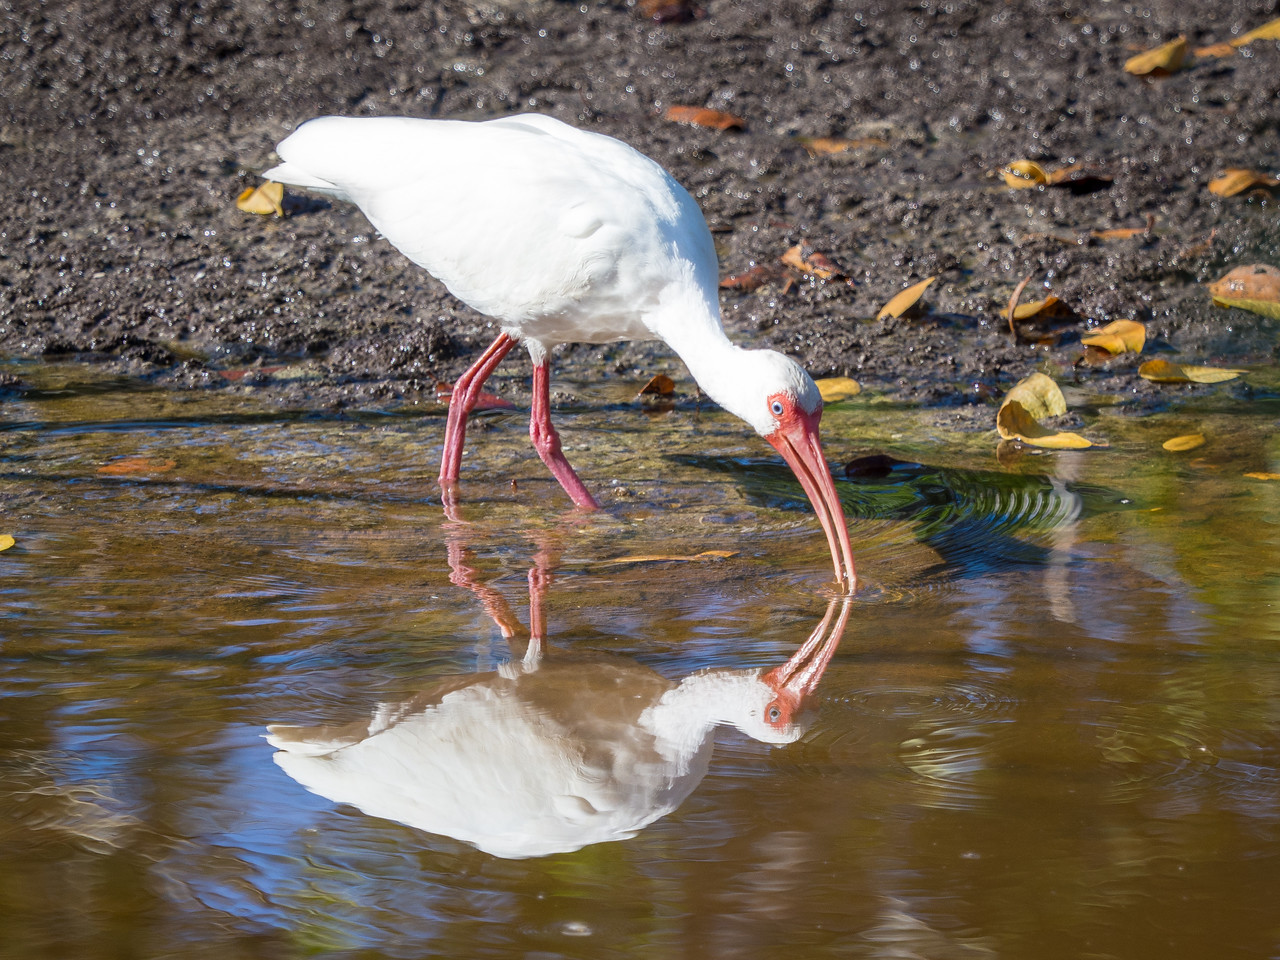 Ibis. Ding Darling Wildlife Refuge, Sanibel Island, FL